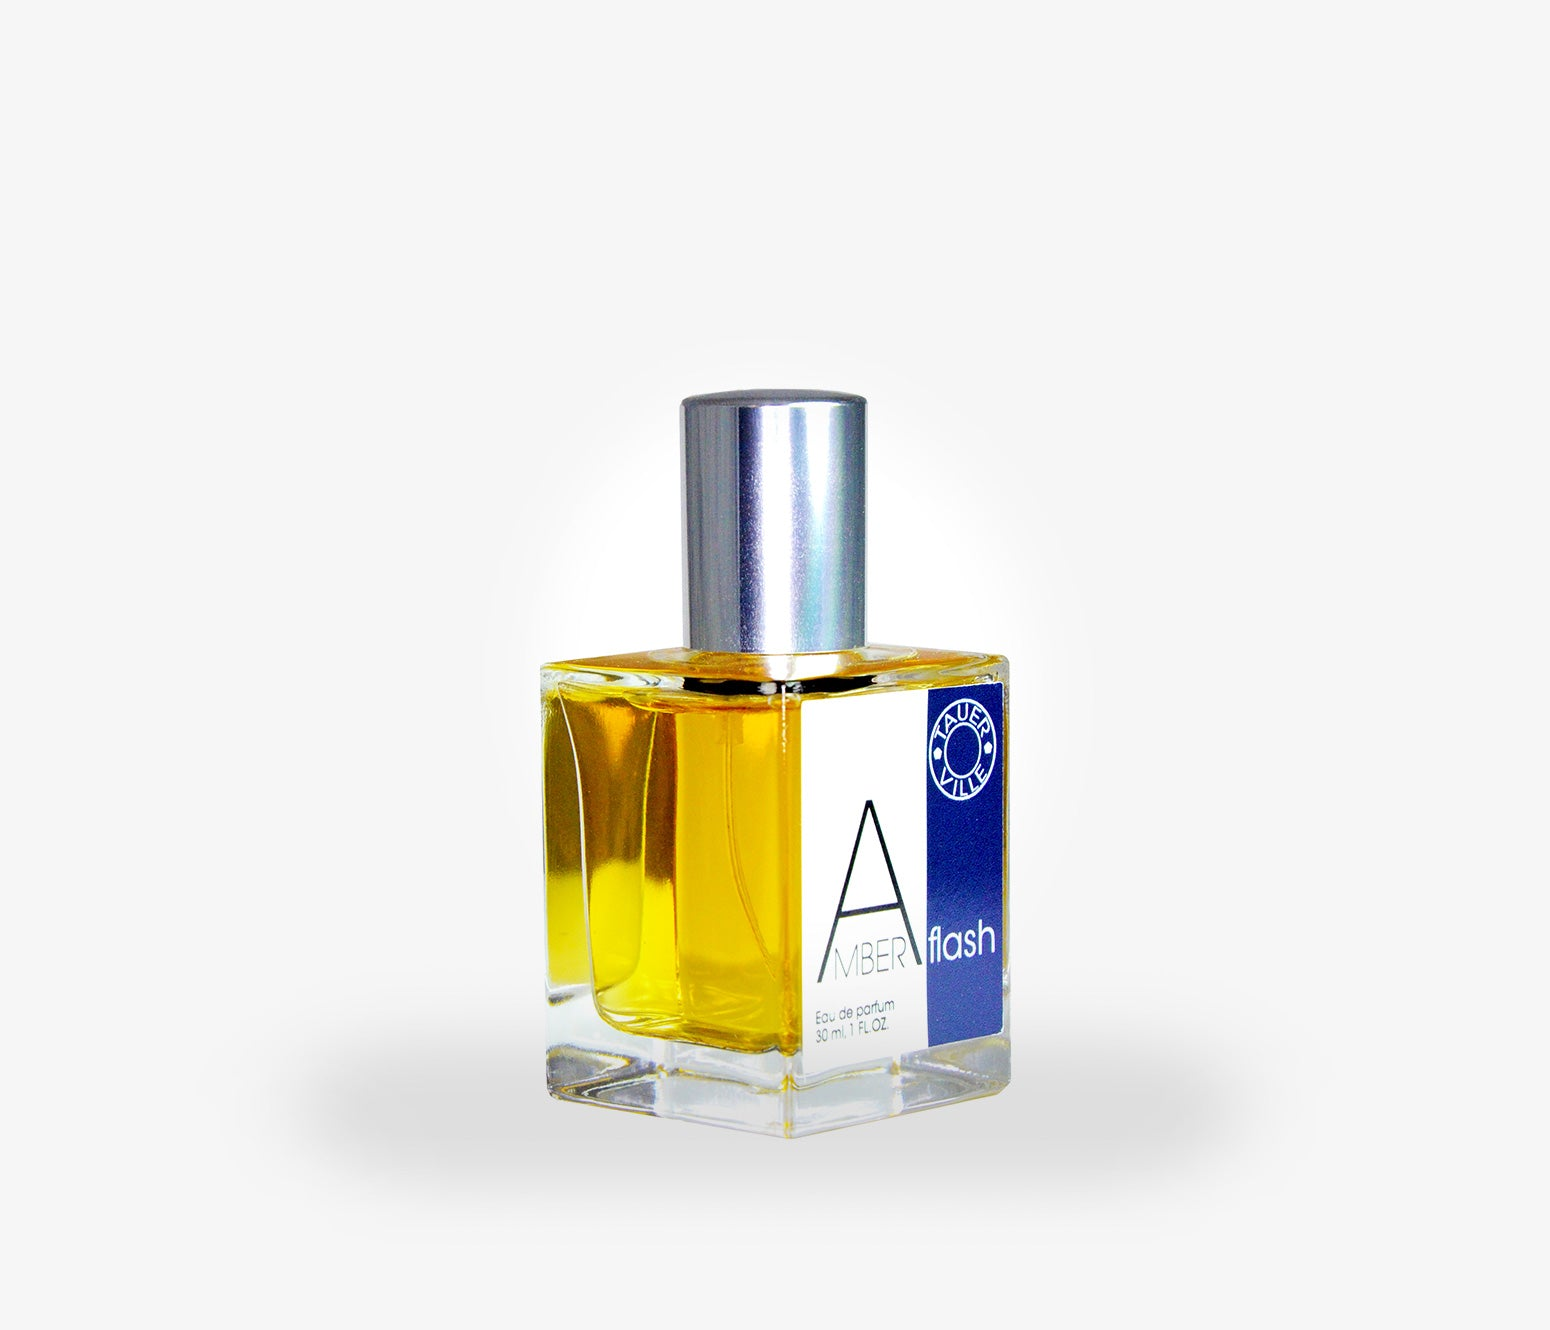 Tauerville - Amber Flash - 30ml - OEL001 - product image - Fragrance - Les Senteurs